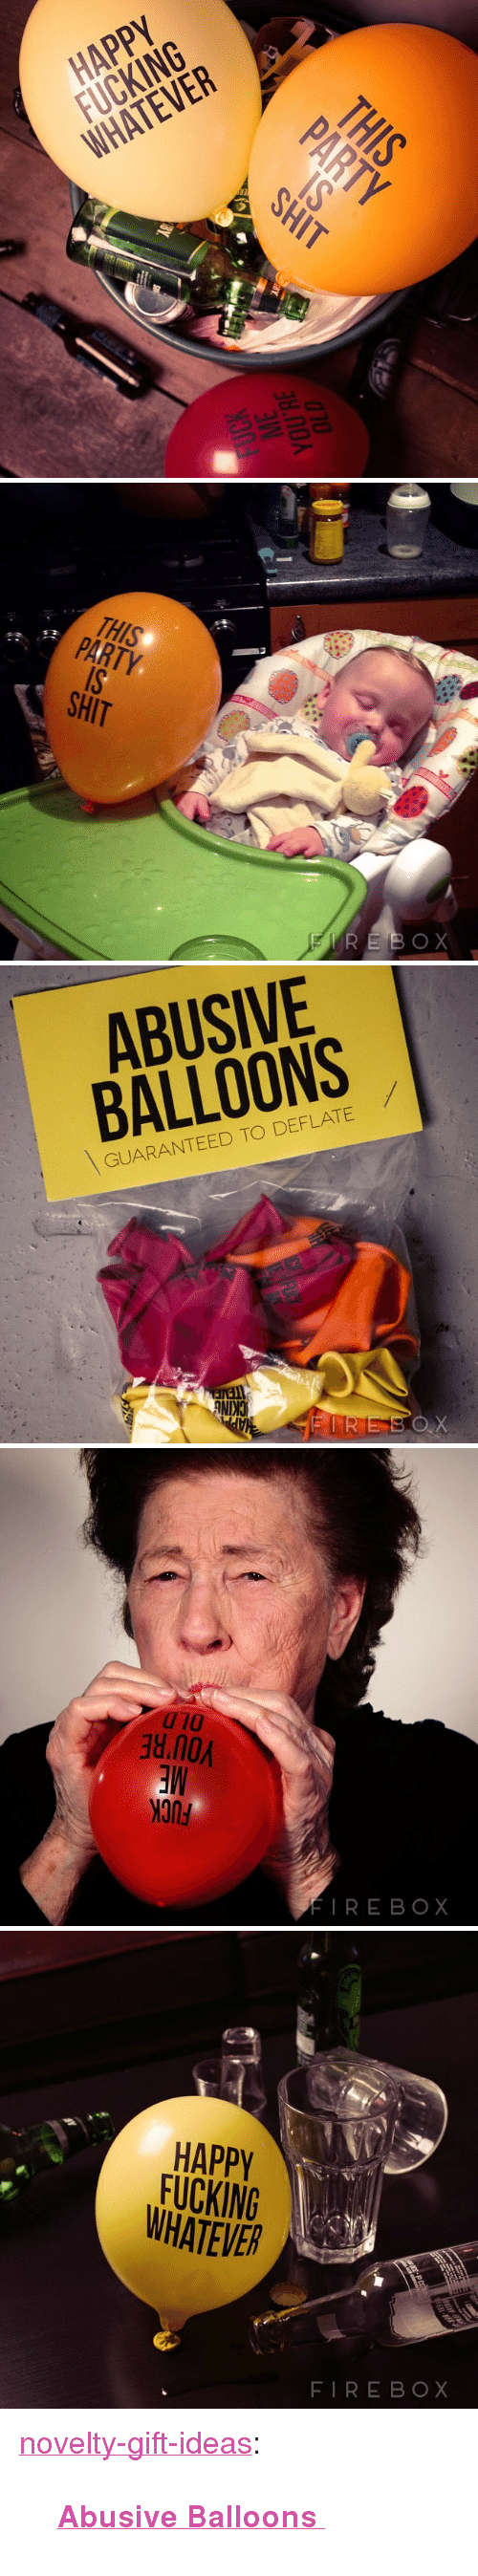 "deflate: HAPPY  FUCKING  WHATEVER   THIS  Tx  SHIT   ABUSIVE  BALLOONS  GUARANTEED TO DEFLATE  NIN   010  no  FIRE BOX   HAPPV  FUCKING  WHATEVER  FIREBOX <p><a href=""https://novelty-gift-ideas.tumblr.com/post/163266417473/abusive-balloons"" class=""tumblr_blog"">novelty-gift-ideas</a>:</p><blockquote><p><b><a href=""https://novelty-gift-ideas.com/abusive-balloons/"">  Abusive Balloons  </a></b><br/></p></blockquote>"